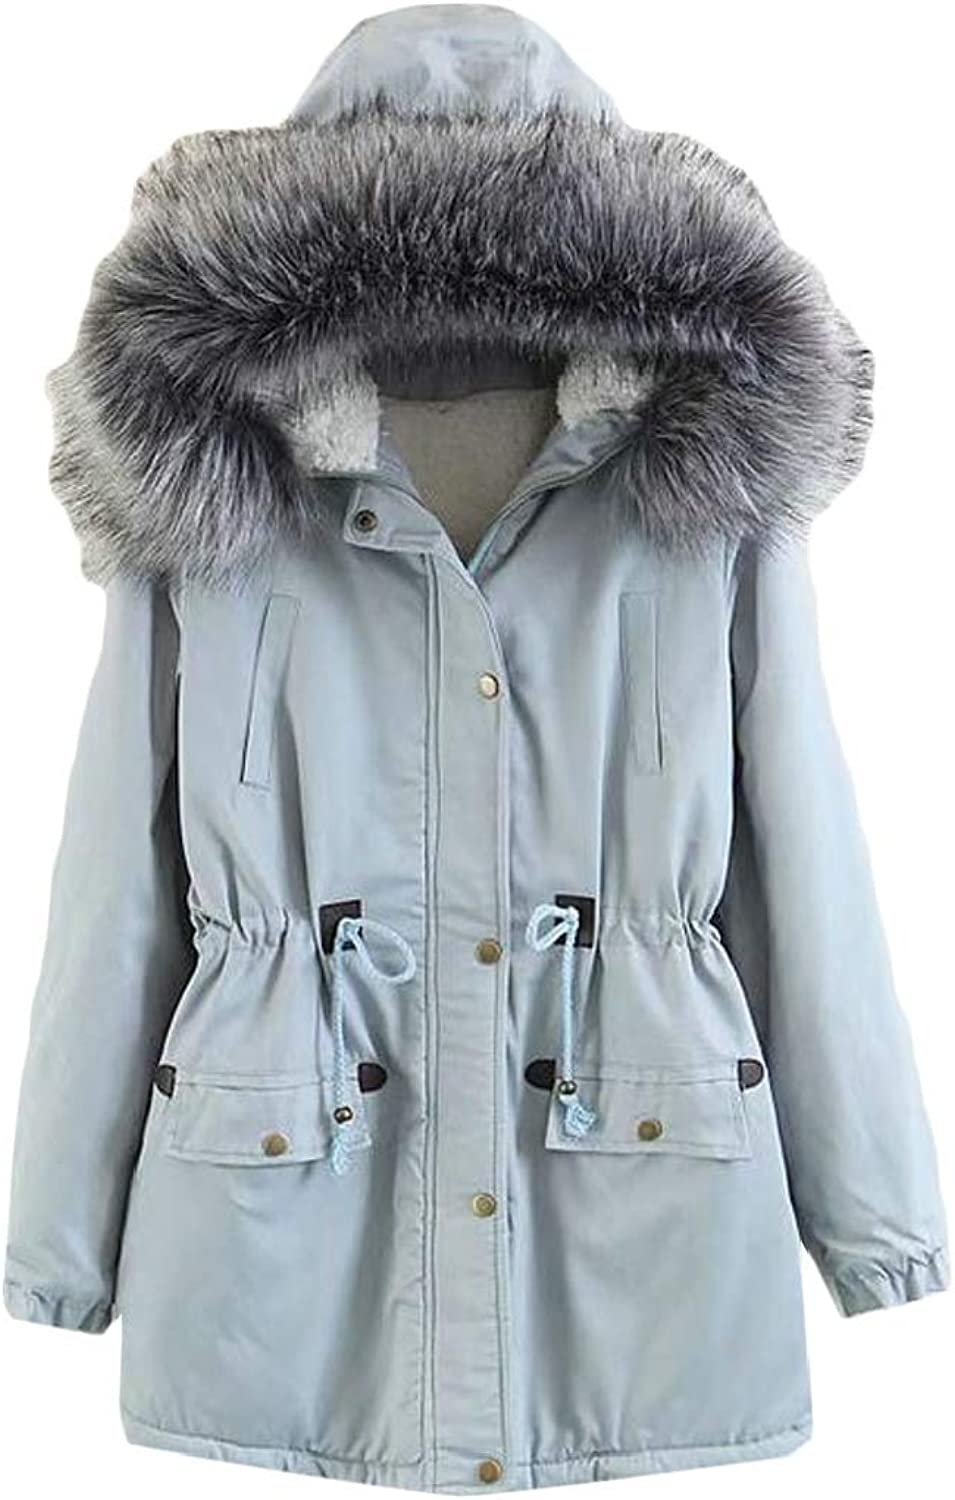 GenericWomen Winter Faux Fur Hoodie Thicken Parka Outdoor Jacket Coats